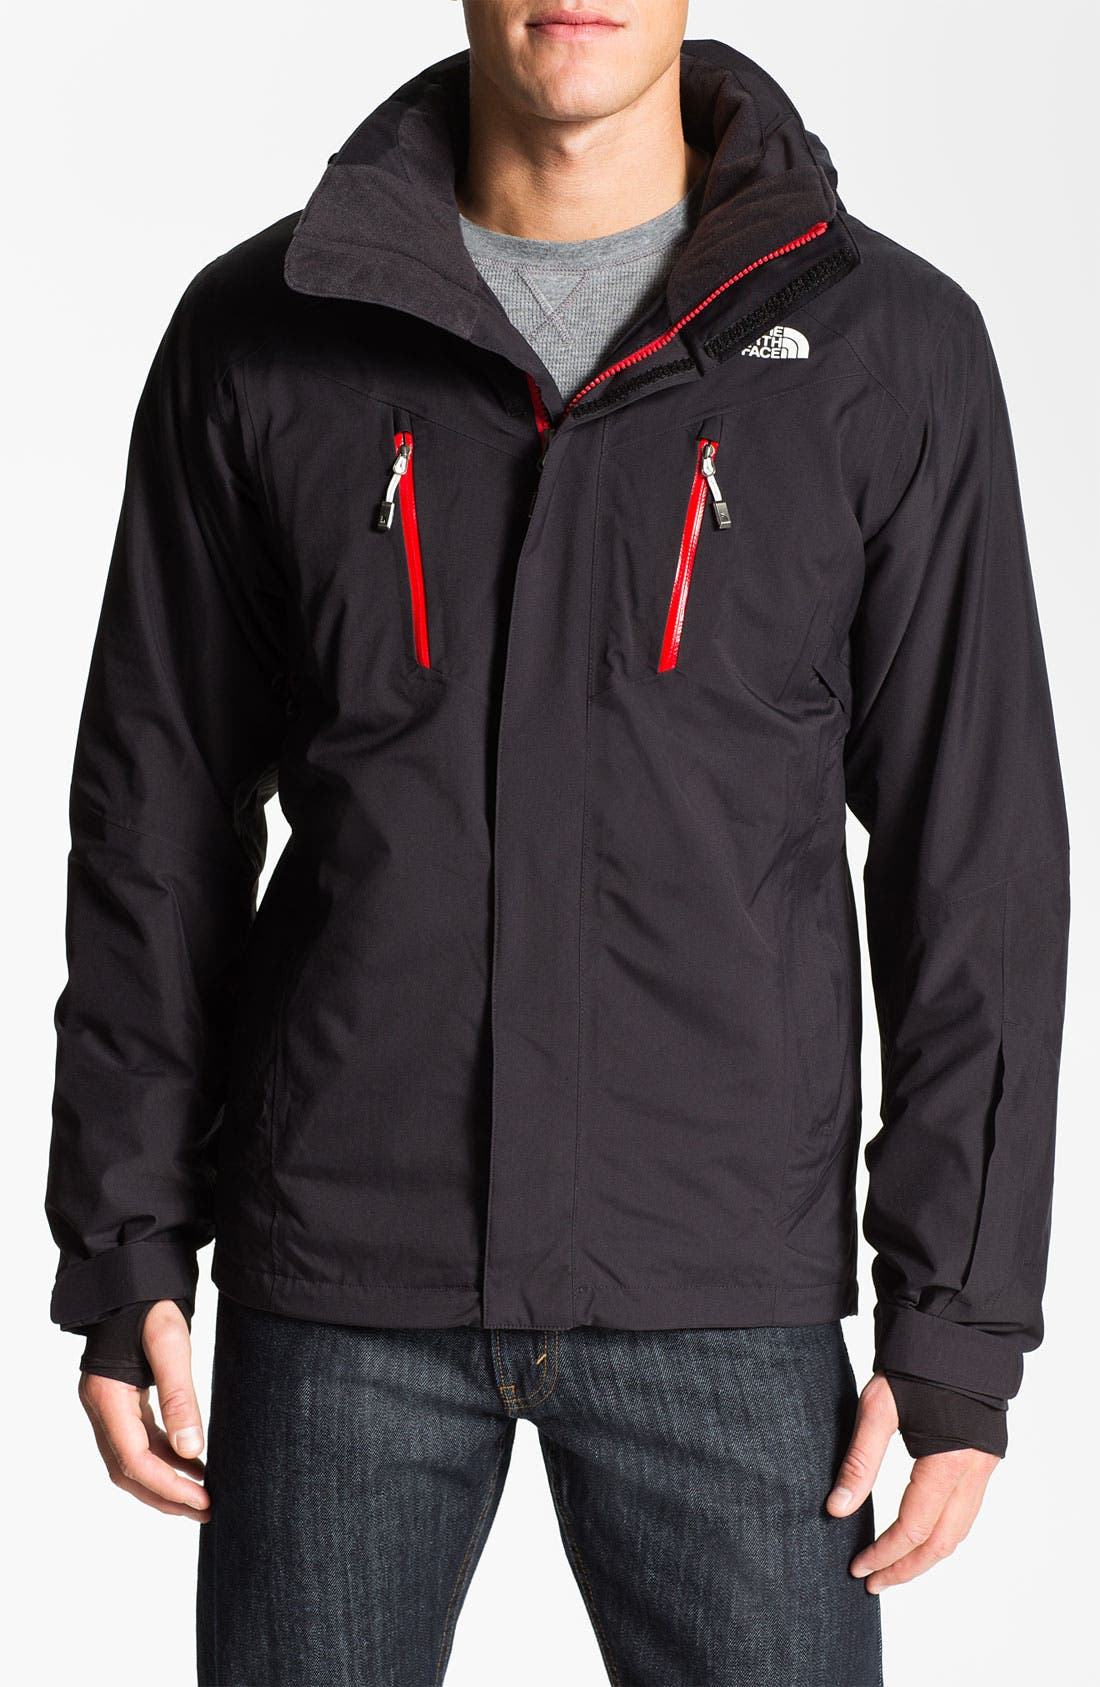 Alternate Image 1 Selected - The North Face 'Bansko' Jacket